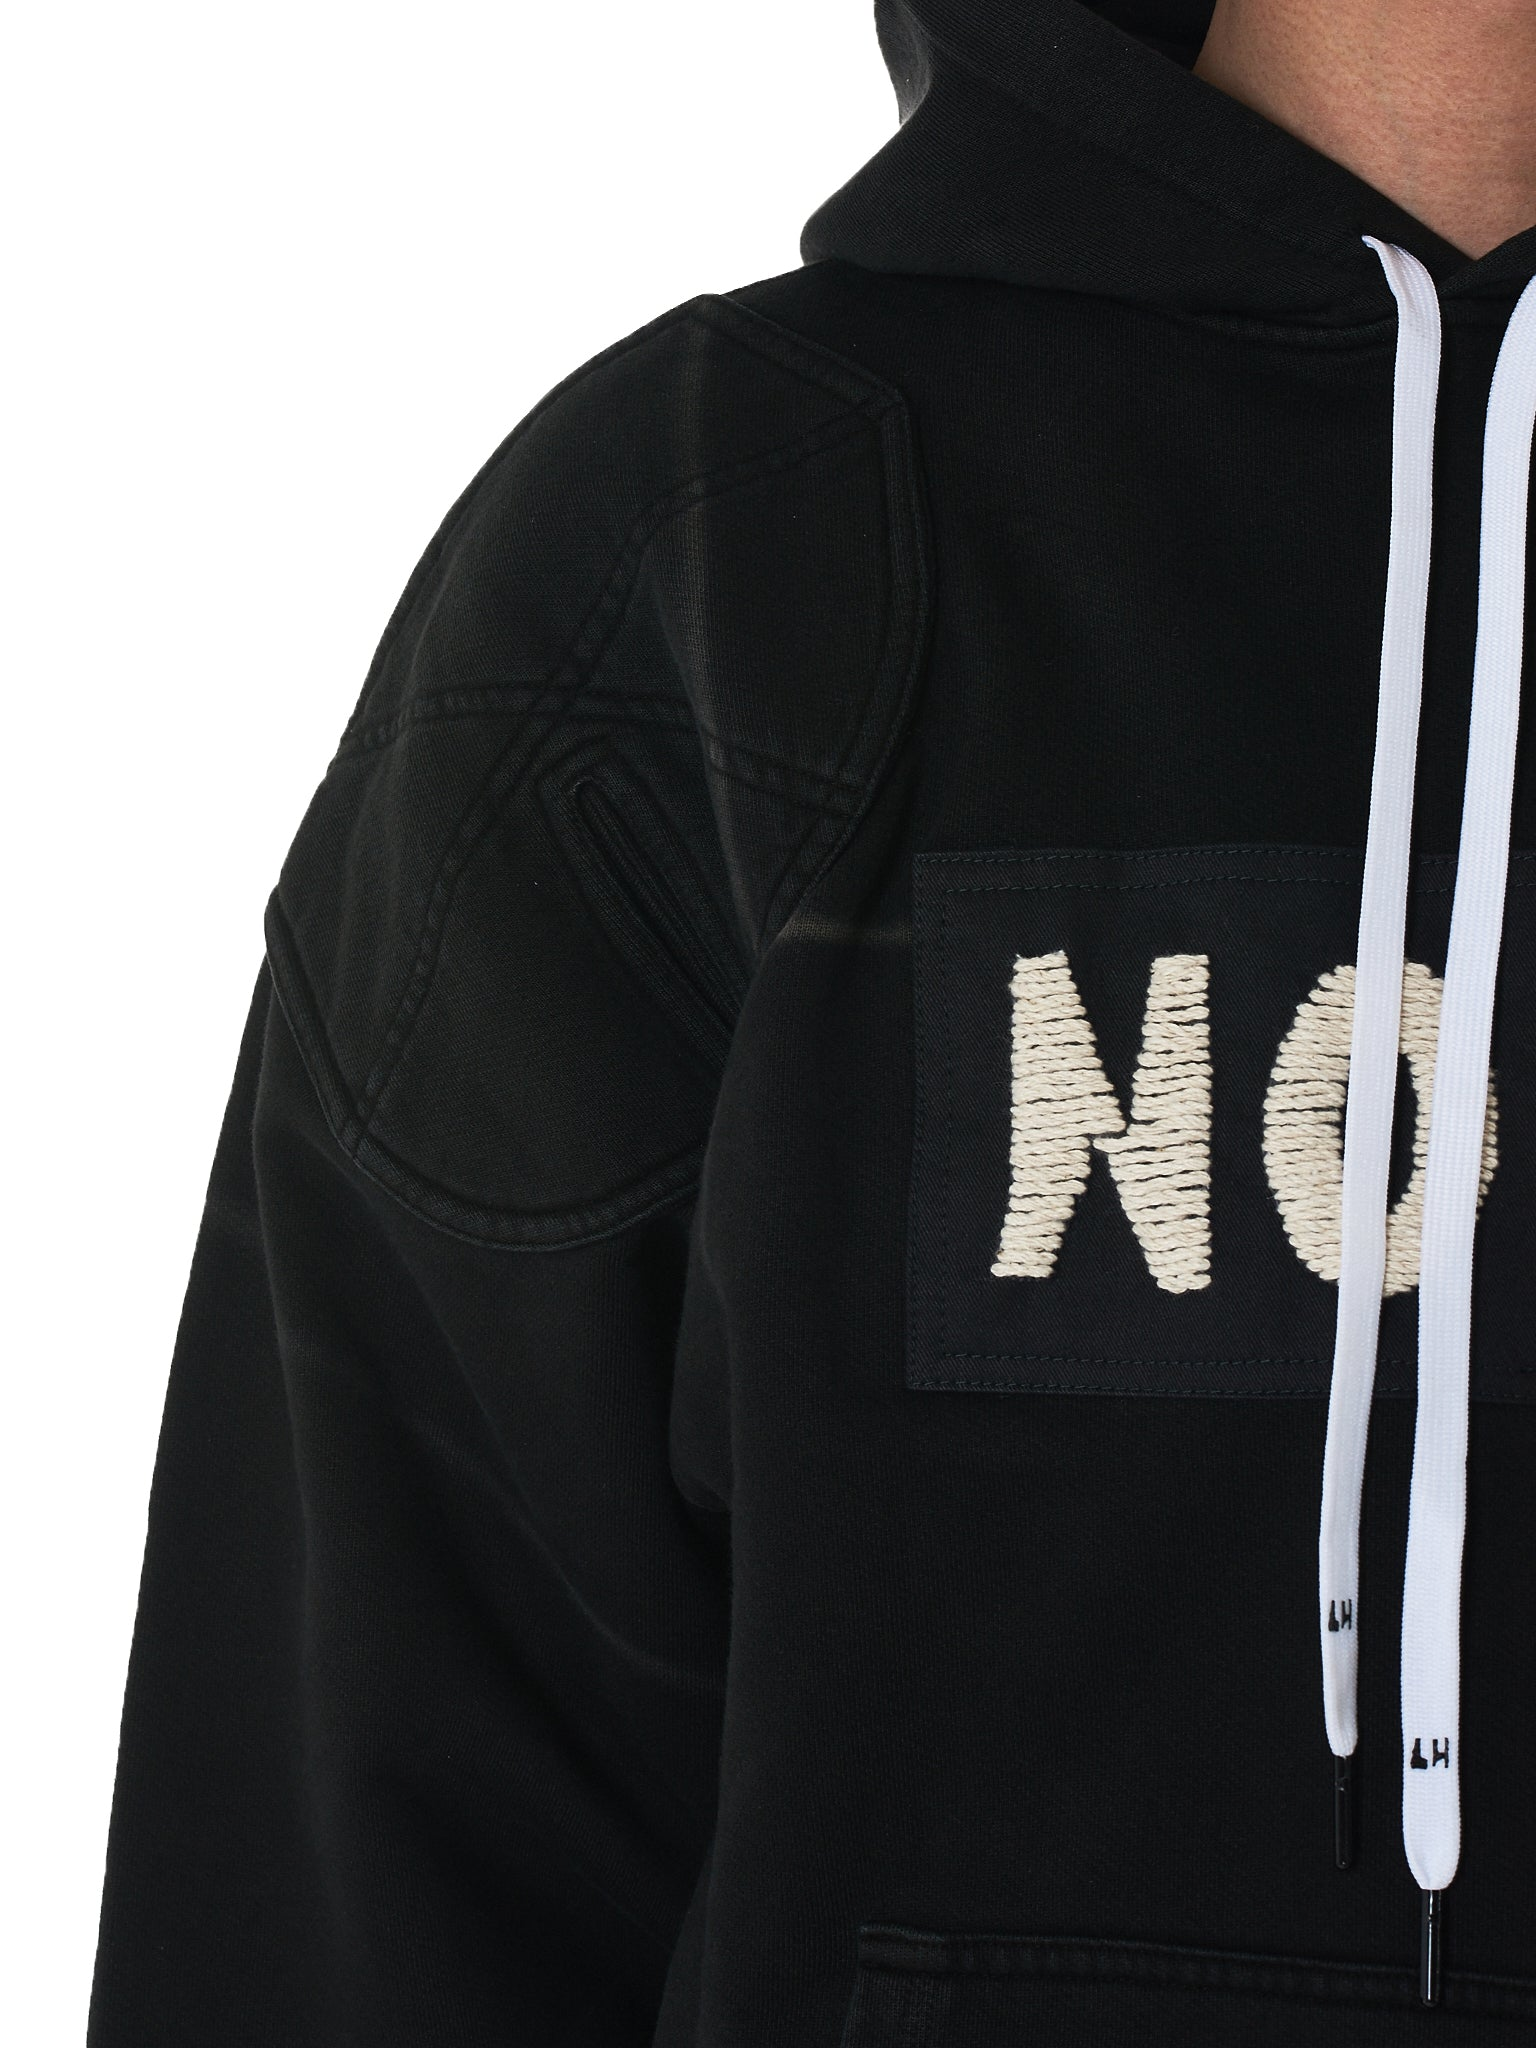 Liam Hodges Hooded Pullover - Hlorenzo Detail 3